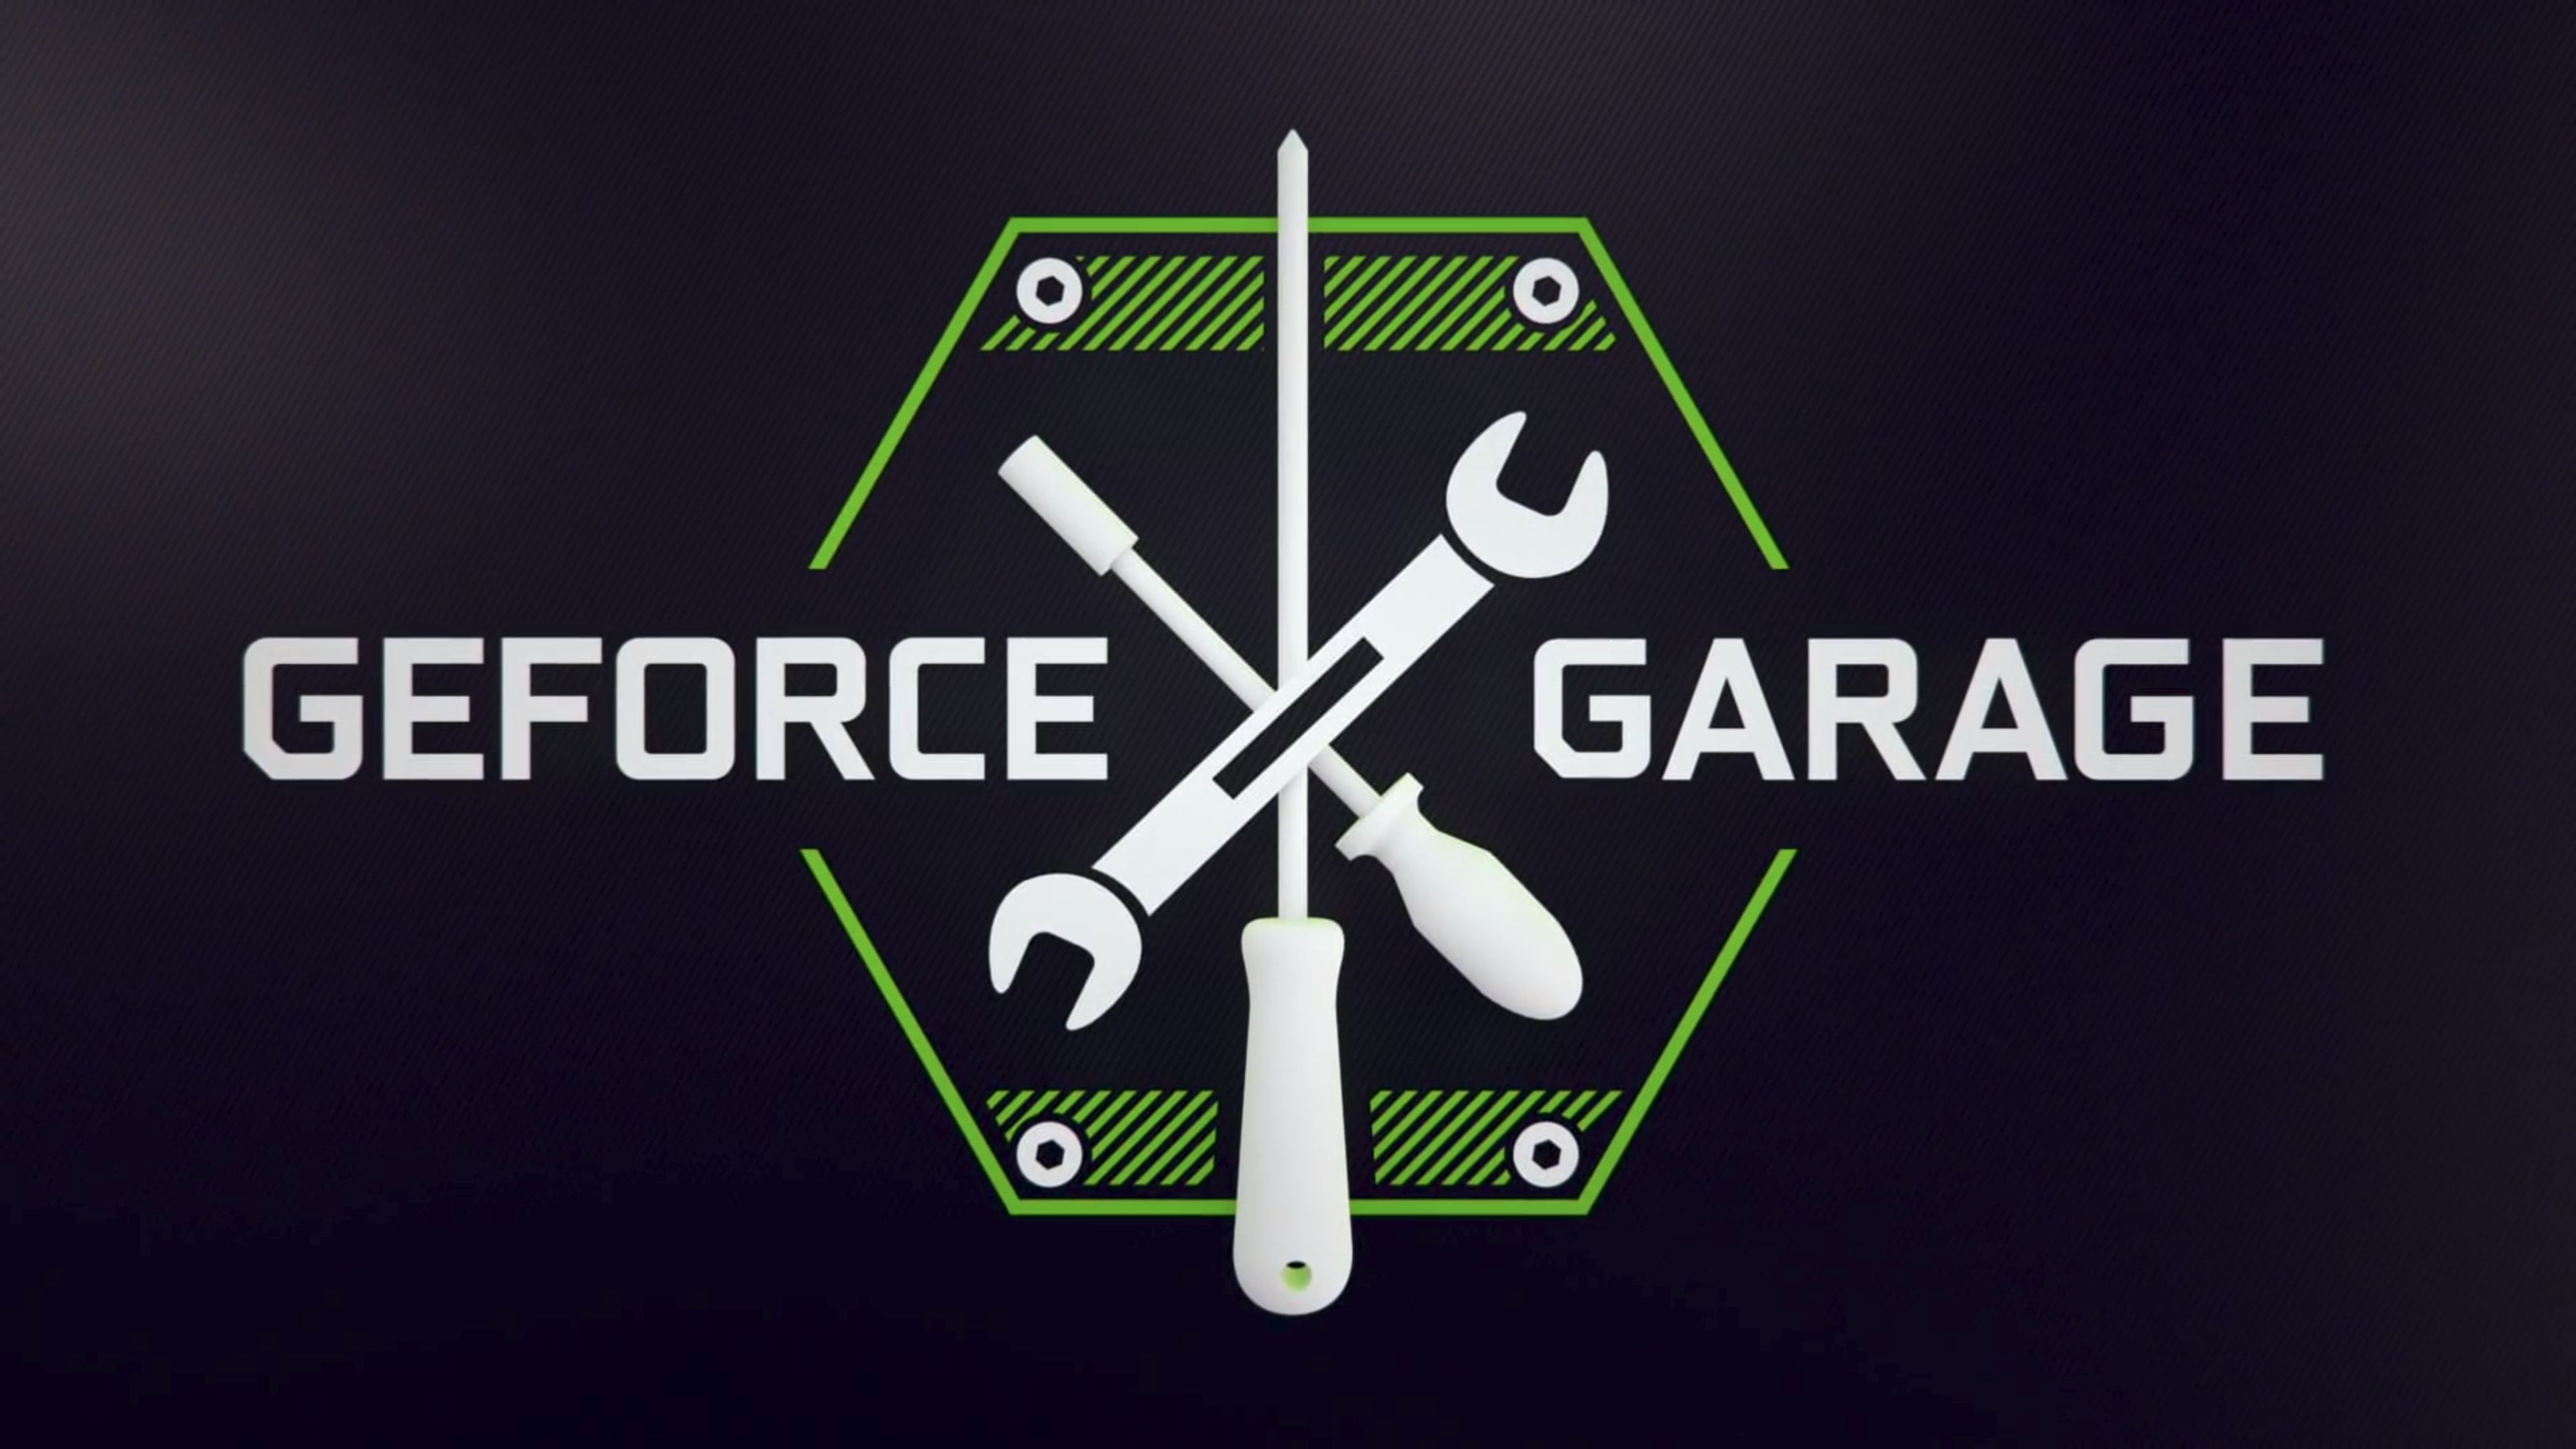 GeForce Garage